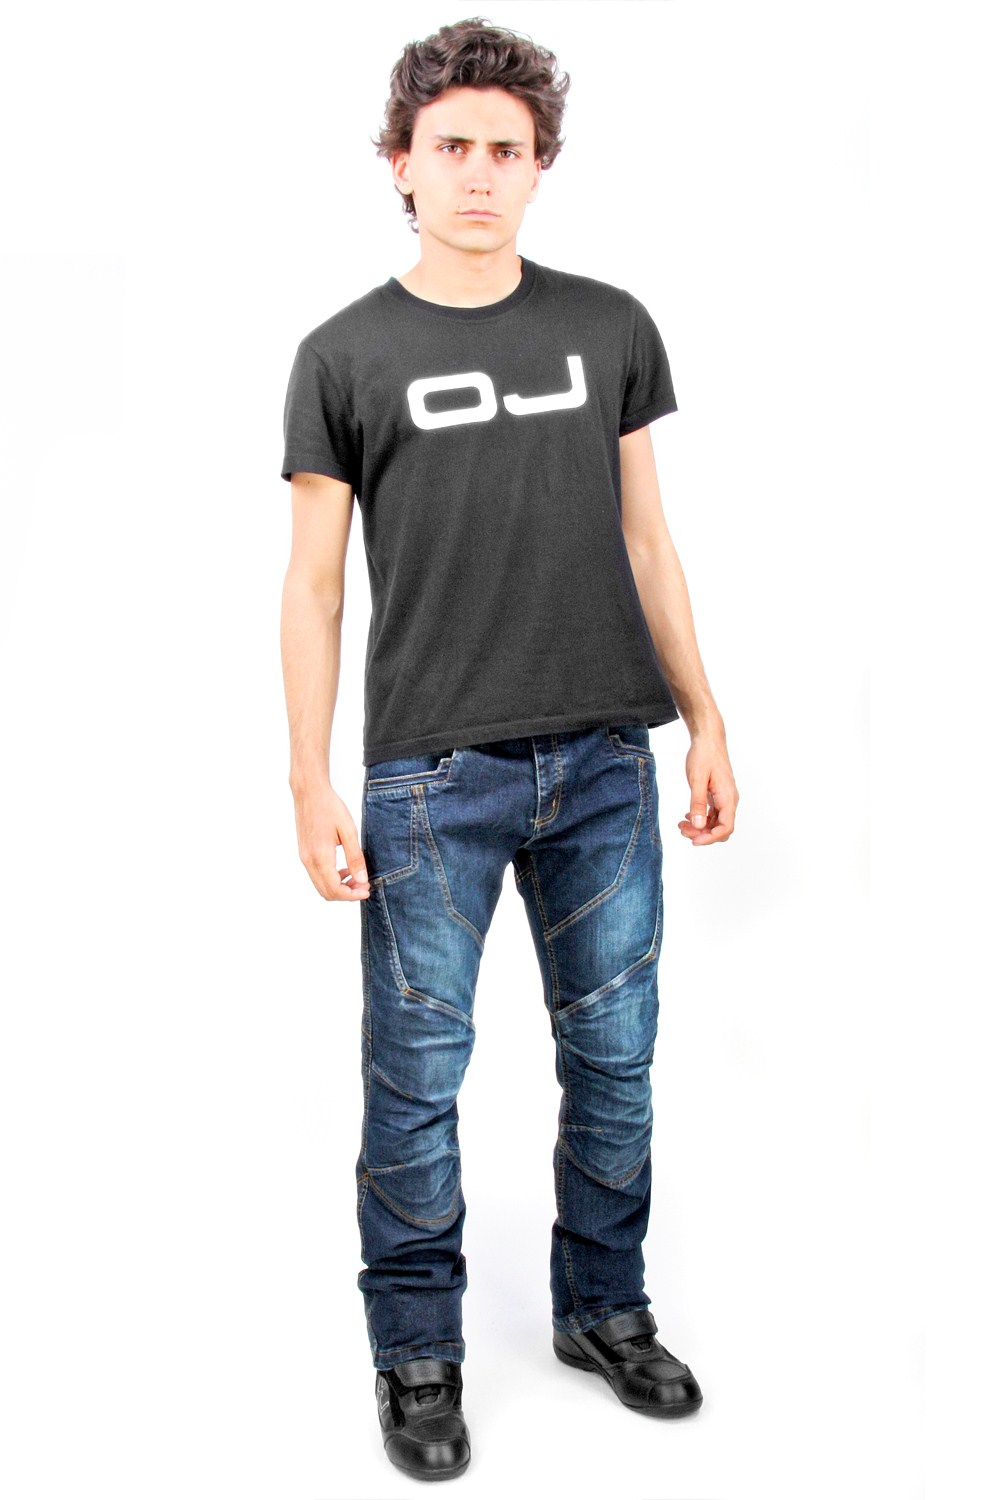 OJ Muscle Man jeans blue